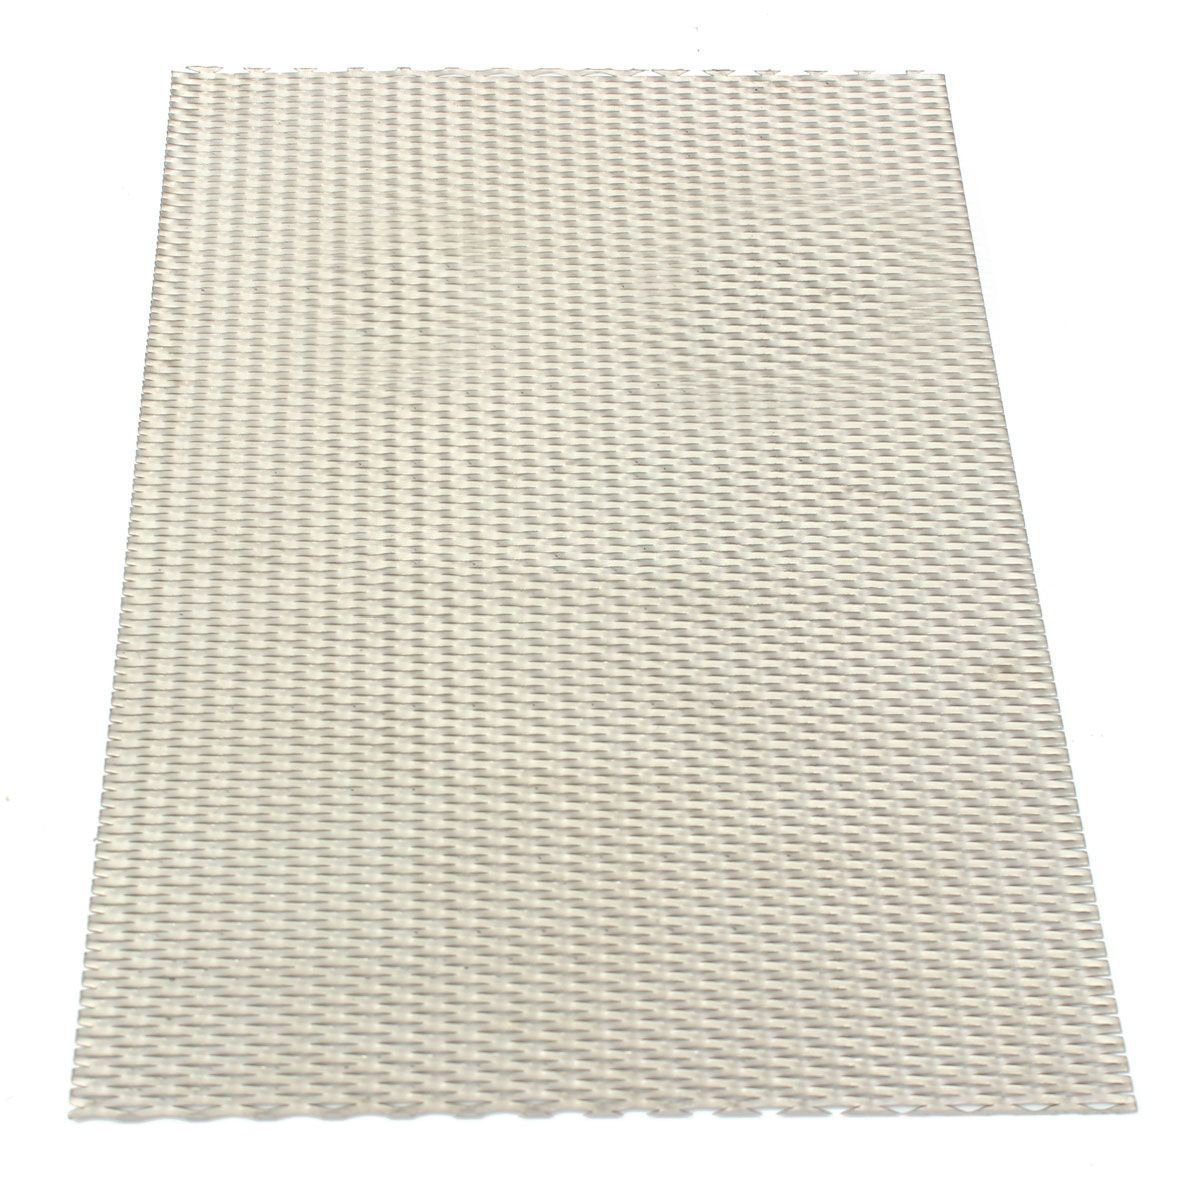 Chipsua 1pc New Titanium Mesh Durable Perforated Plate Expanded Mesh Sheet 200mmx300mmx0.5mm